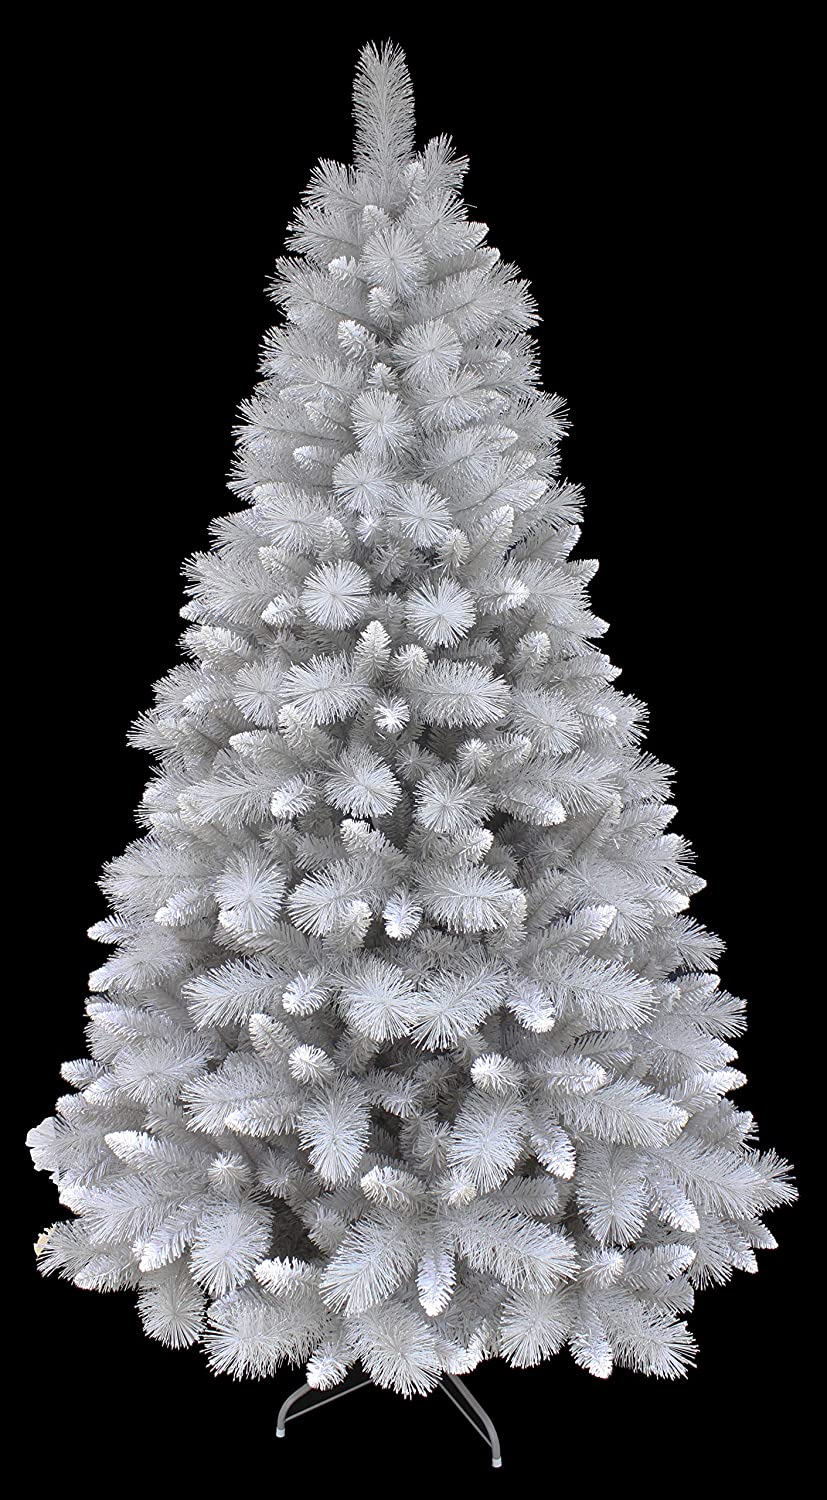 Glitter Silver Pine Small Christmas Tree with Frosted White Tips (5ft) Holiday Stuff Co.Inc